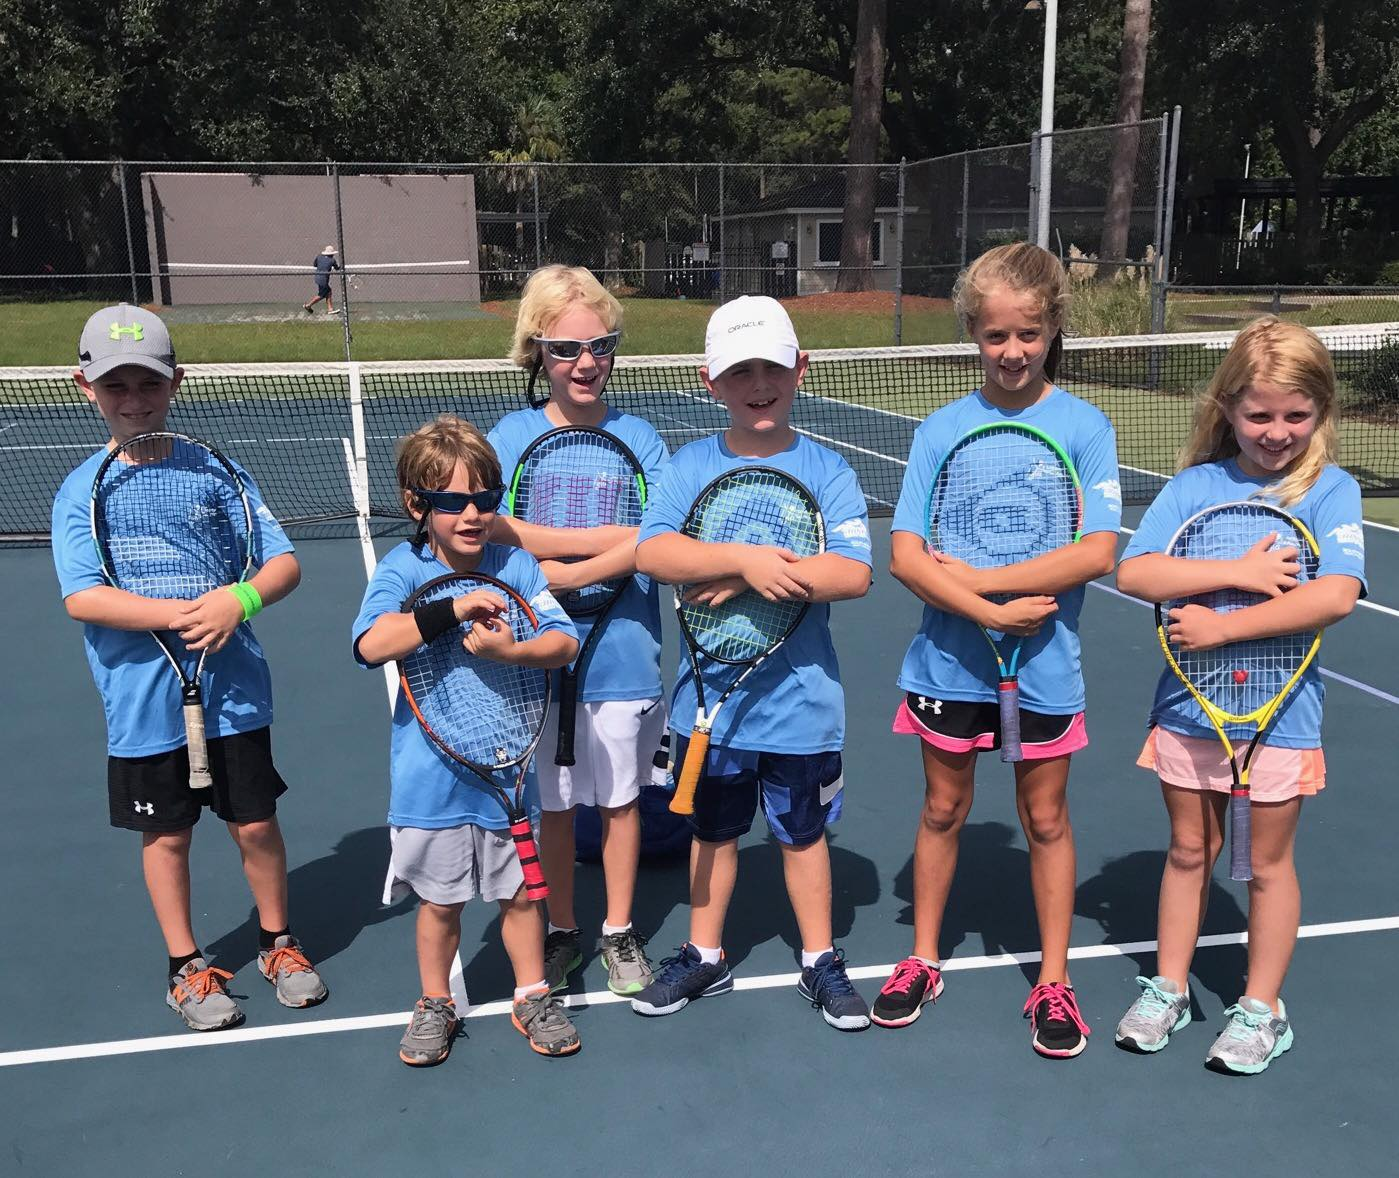 JUNIOR FUTURE STARS - Ages 6-10Our goal with this program is to start you child in the lifetime sport of tennis in a fun, positive, active, and safe environment where they can excel in age appropriate games and drills. Our programs will provide expert instruction that simplifies the game of tennis so your child will love it and enjoy the sport from the first day they step out on the tennis court.Your child will be encouraged to play the game and be on a team!